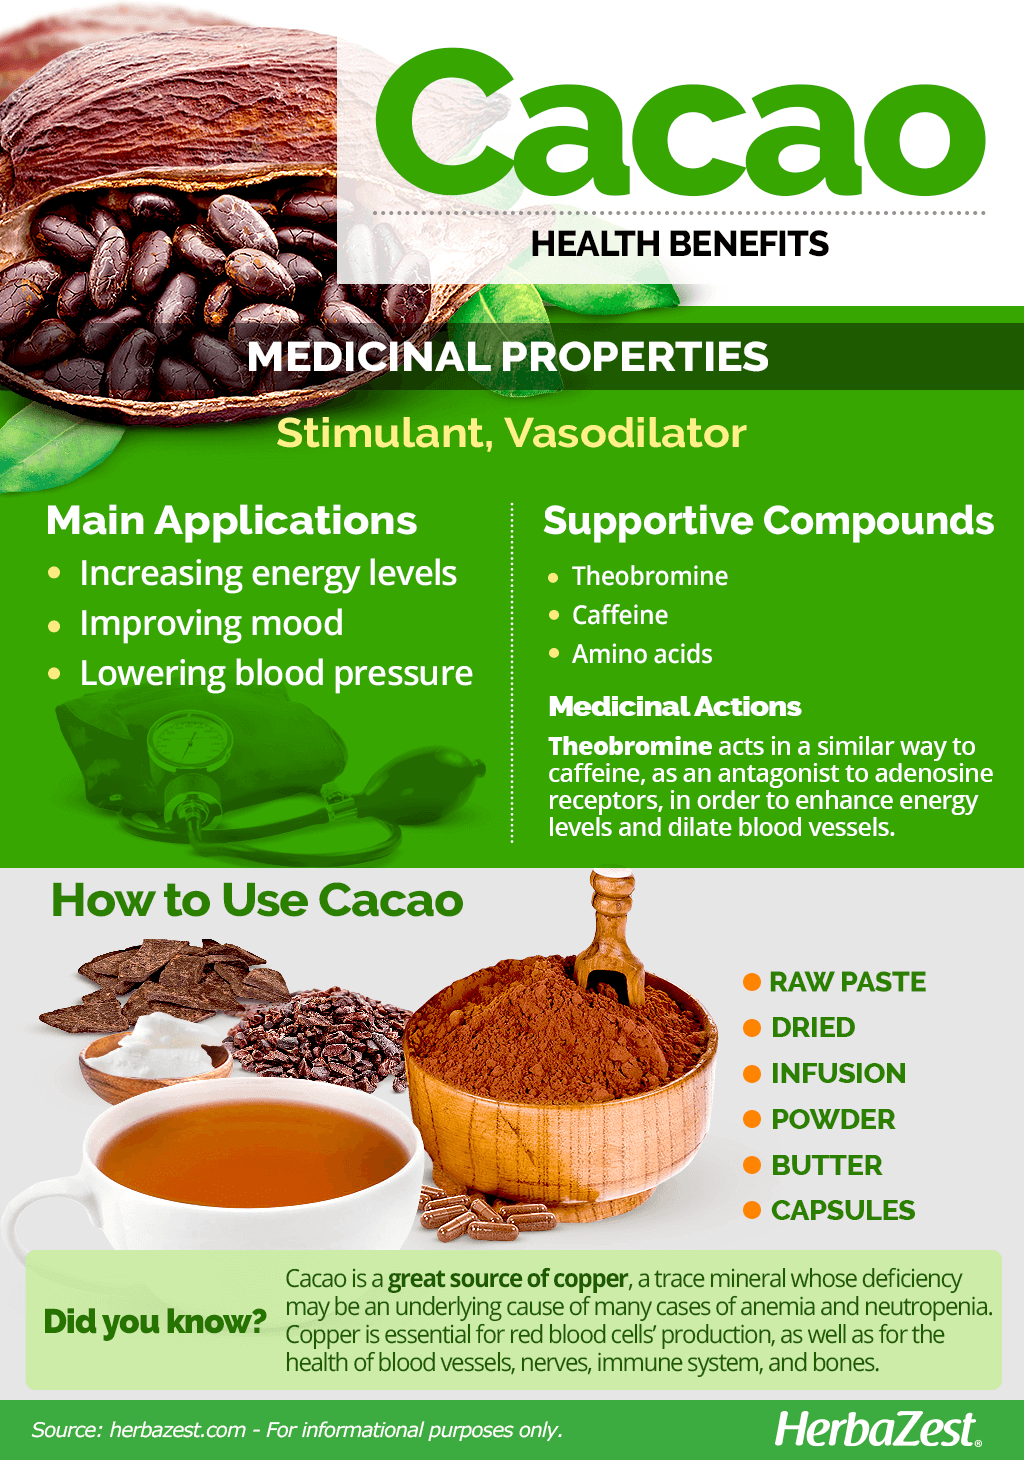 All About Cacao